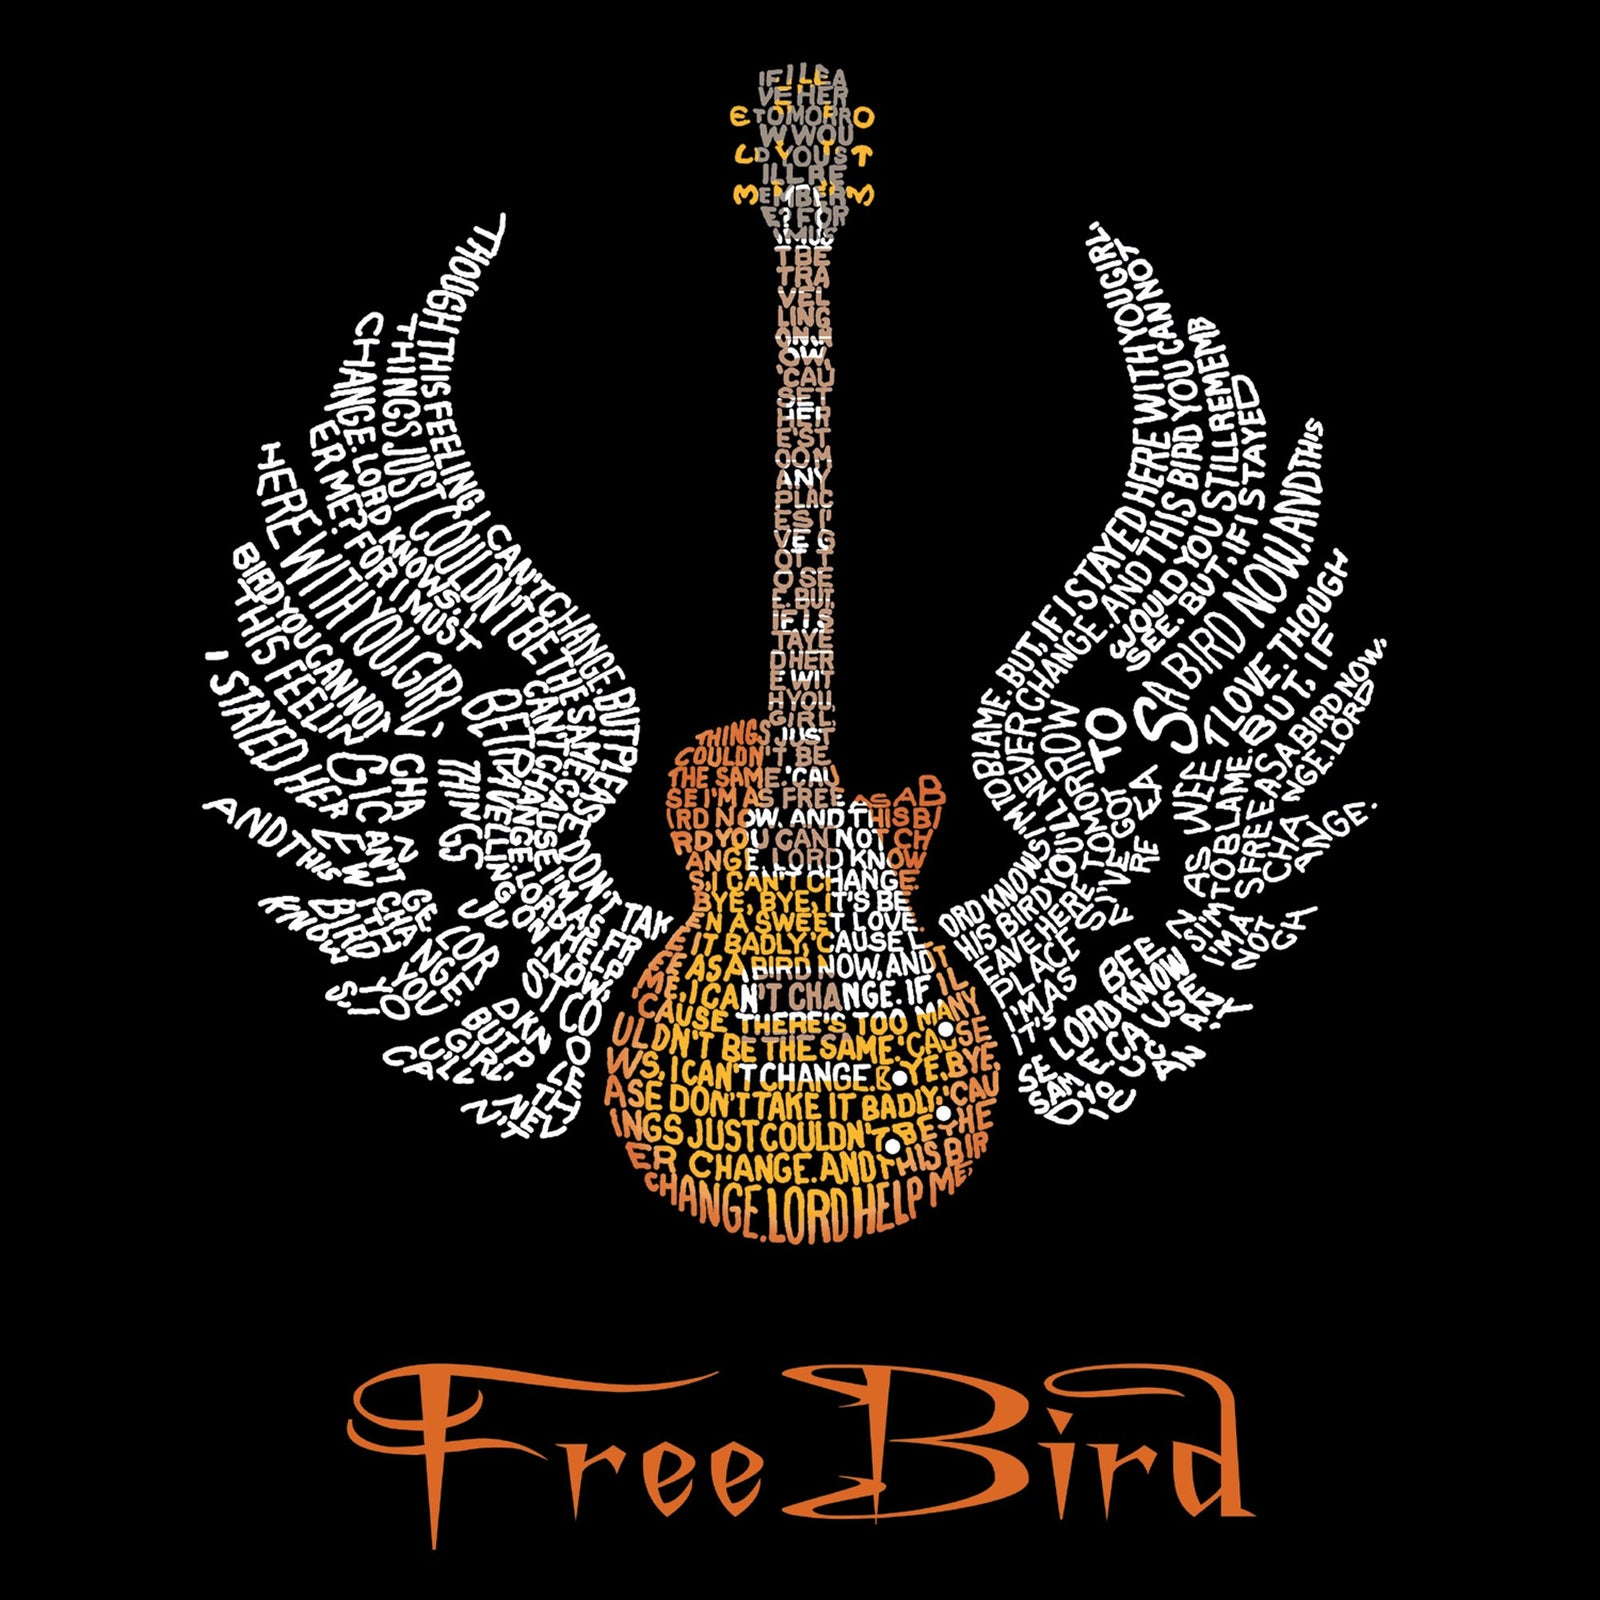 Men's T-shirt - LYRICS TO FREE BIRD